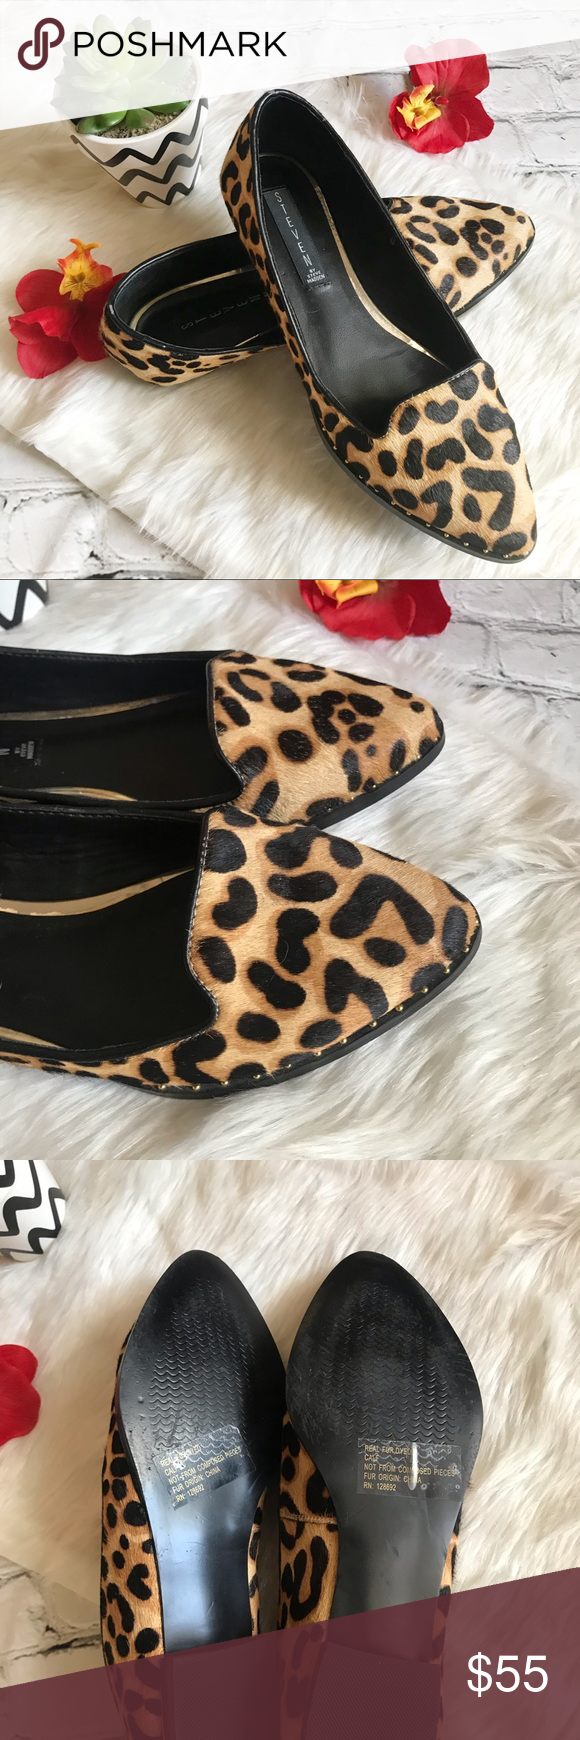 """ce496eb0a9f Steven by Steve Madden Leopard Calf Hair Loafers Excellent used condition  Genuine Calf Hair """"STEPHIEE"""" leopard loafers. Barely worn."""